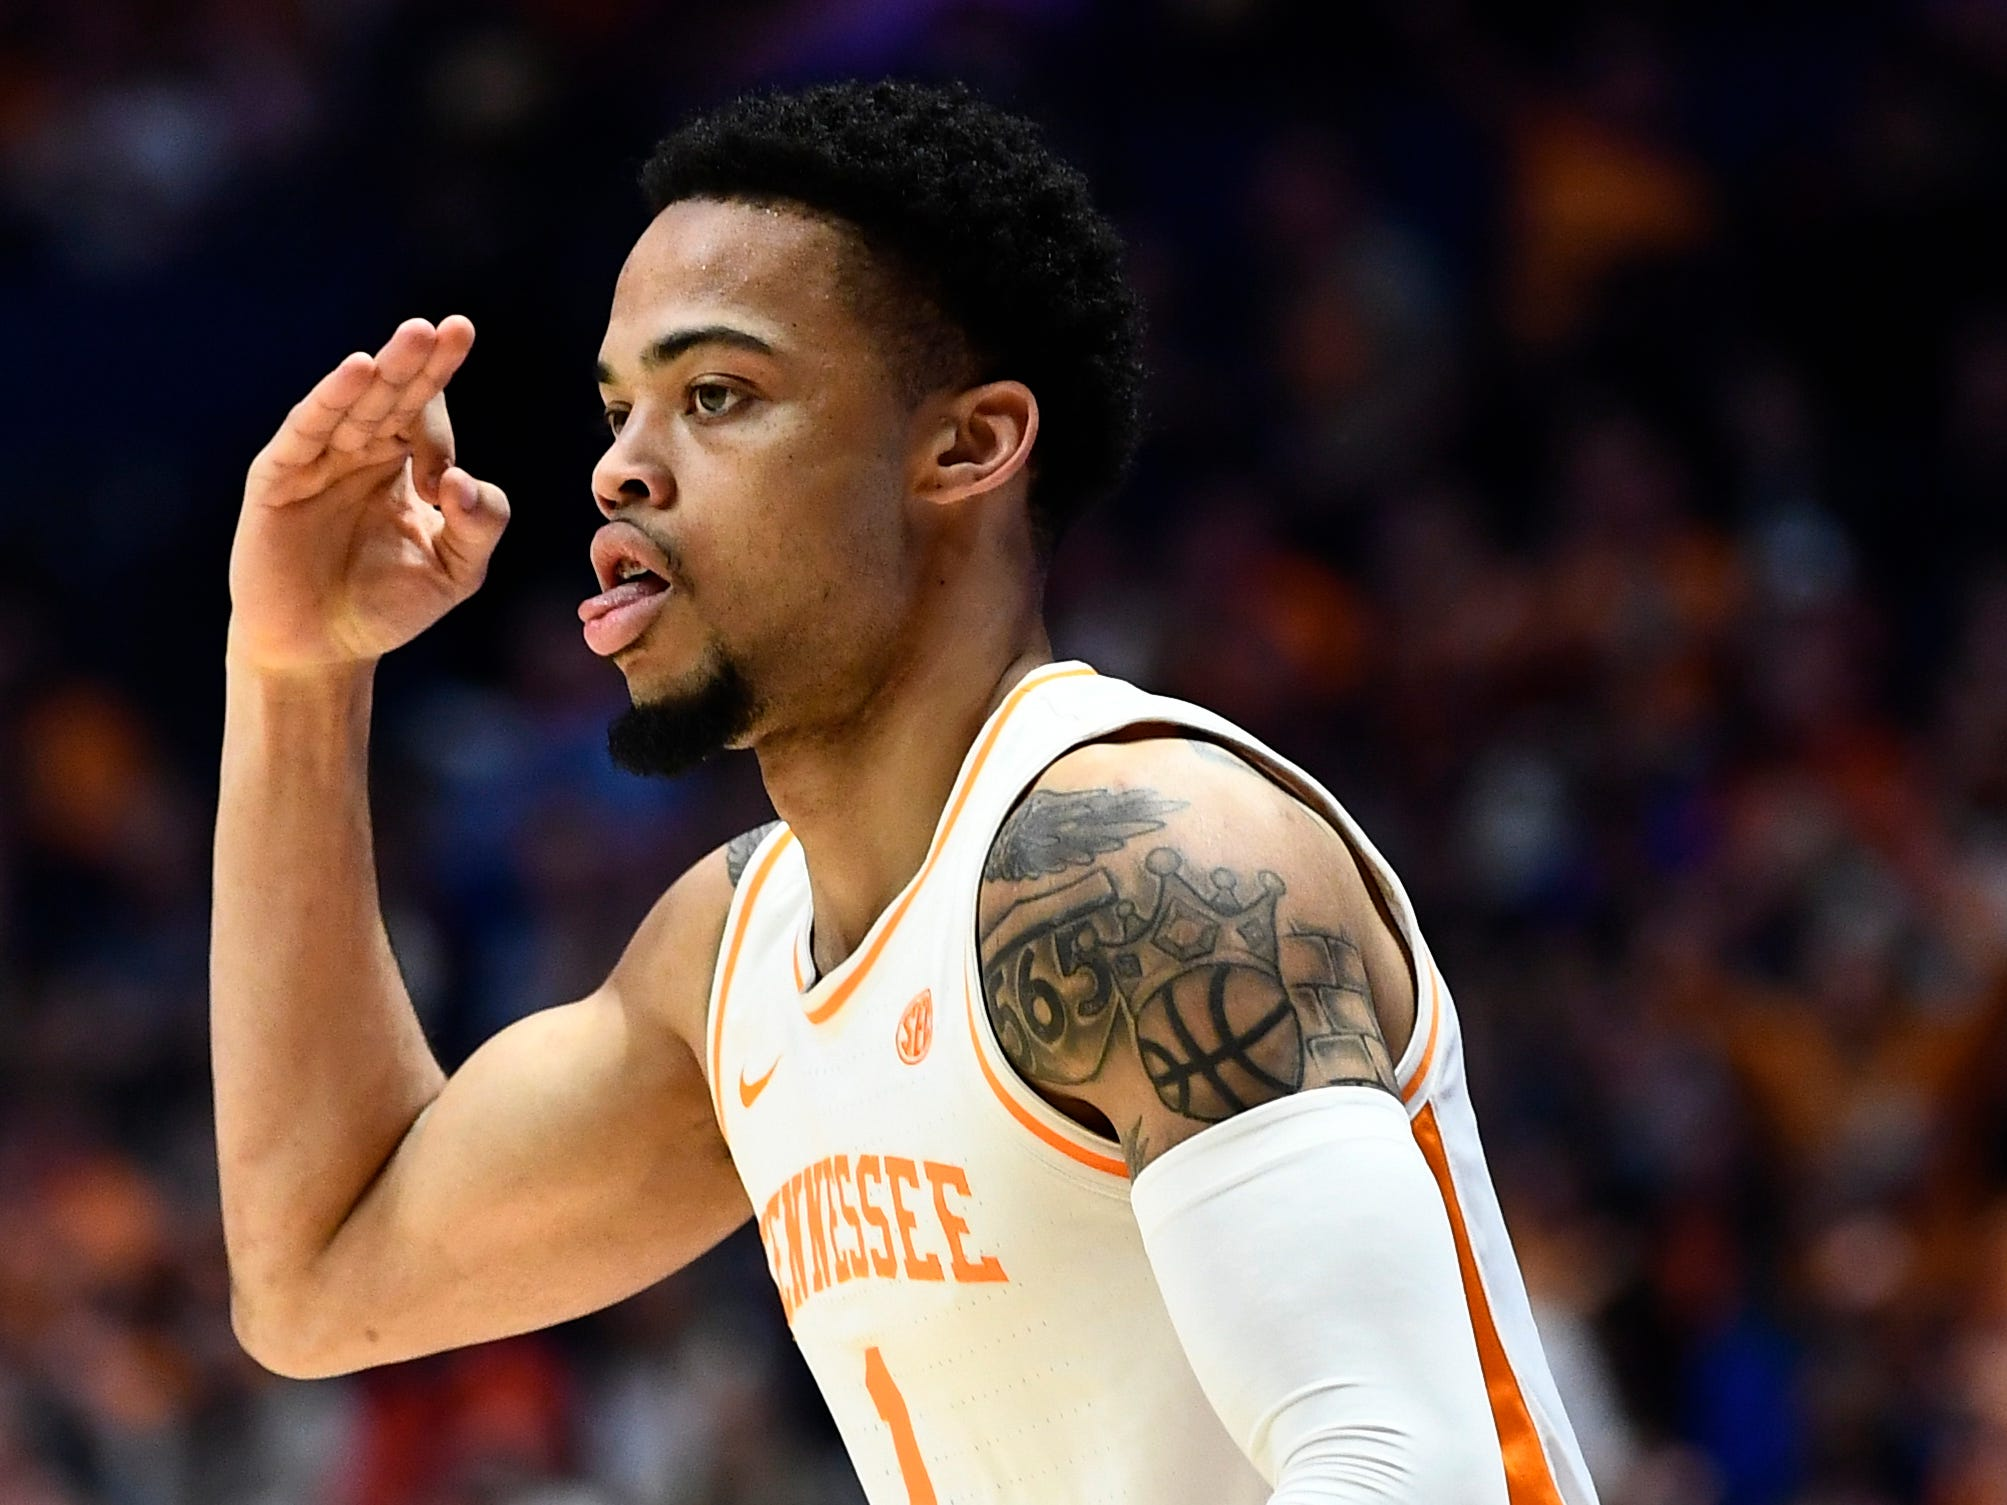 Tennessee guard Lamonte Turner (1) signals a three during the first half of the SEC Men's Basketball Tournament championship game against Auburn at Bridgestone Arena in Nashville, Tenn., Sunday, March 17, 2019.